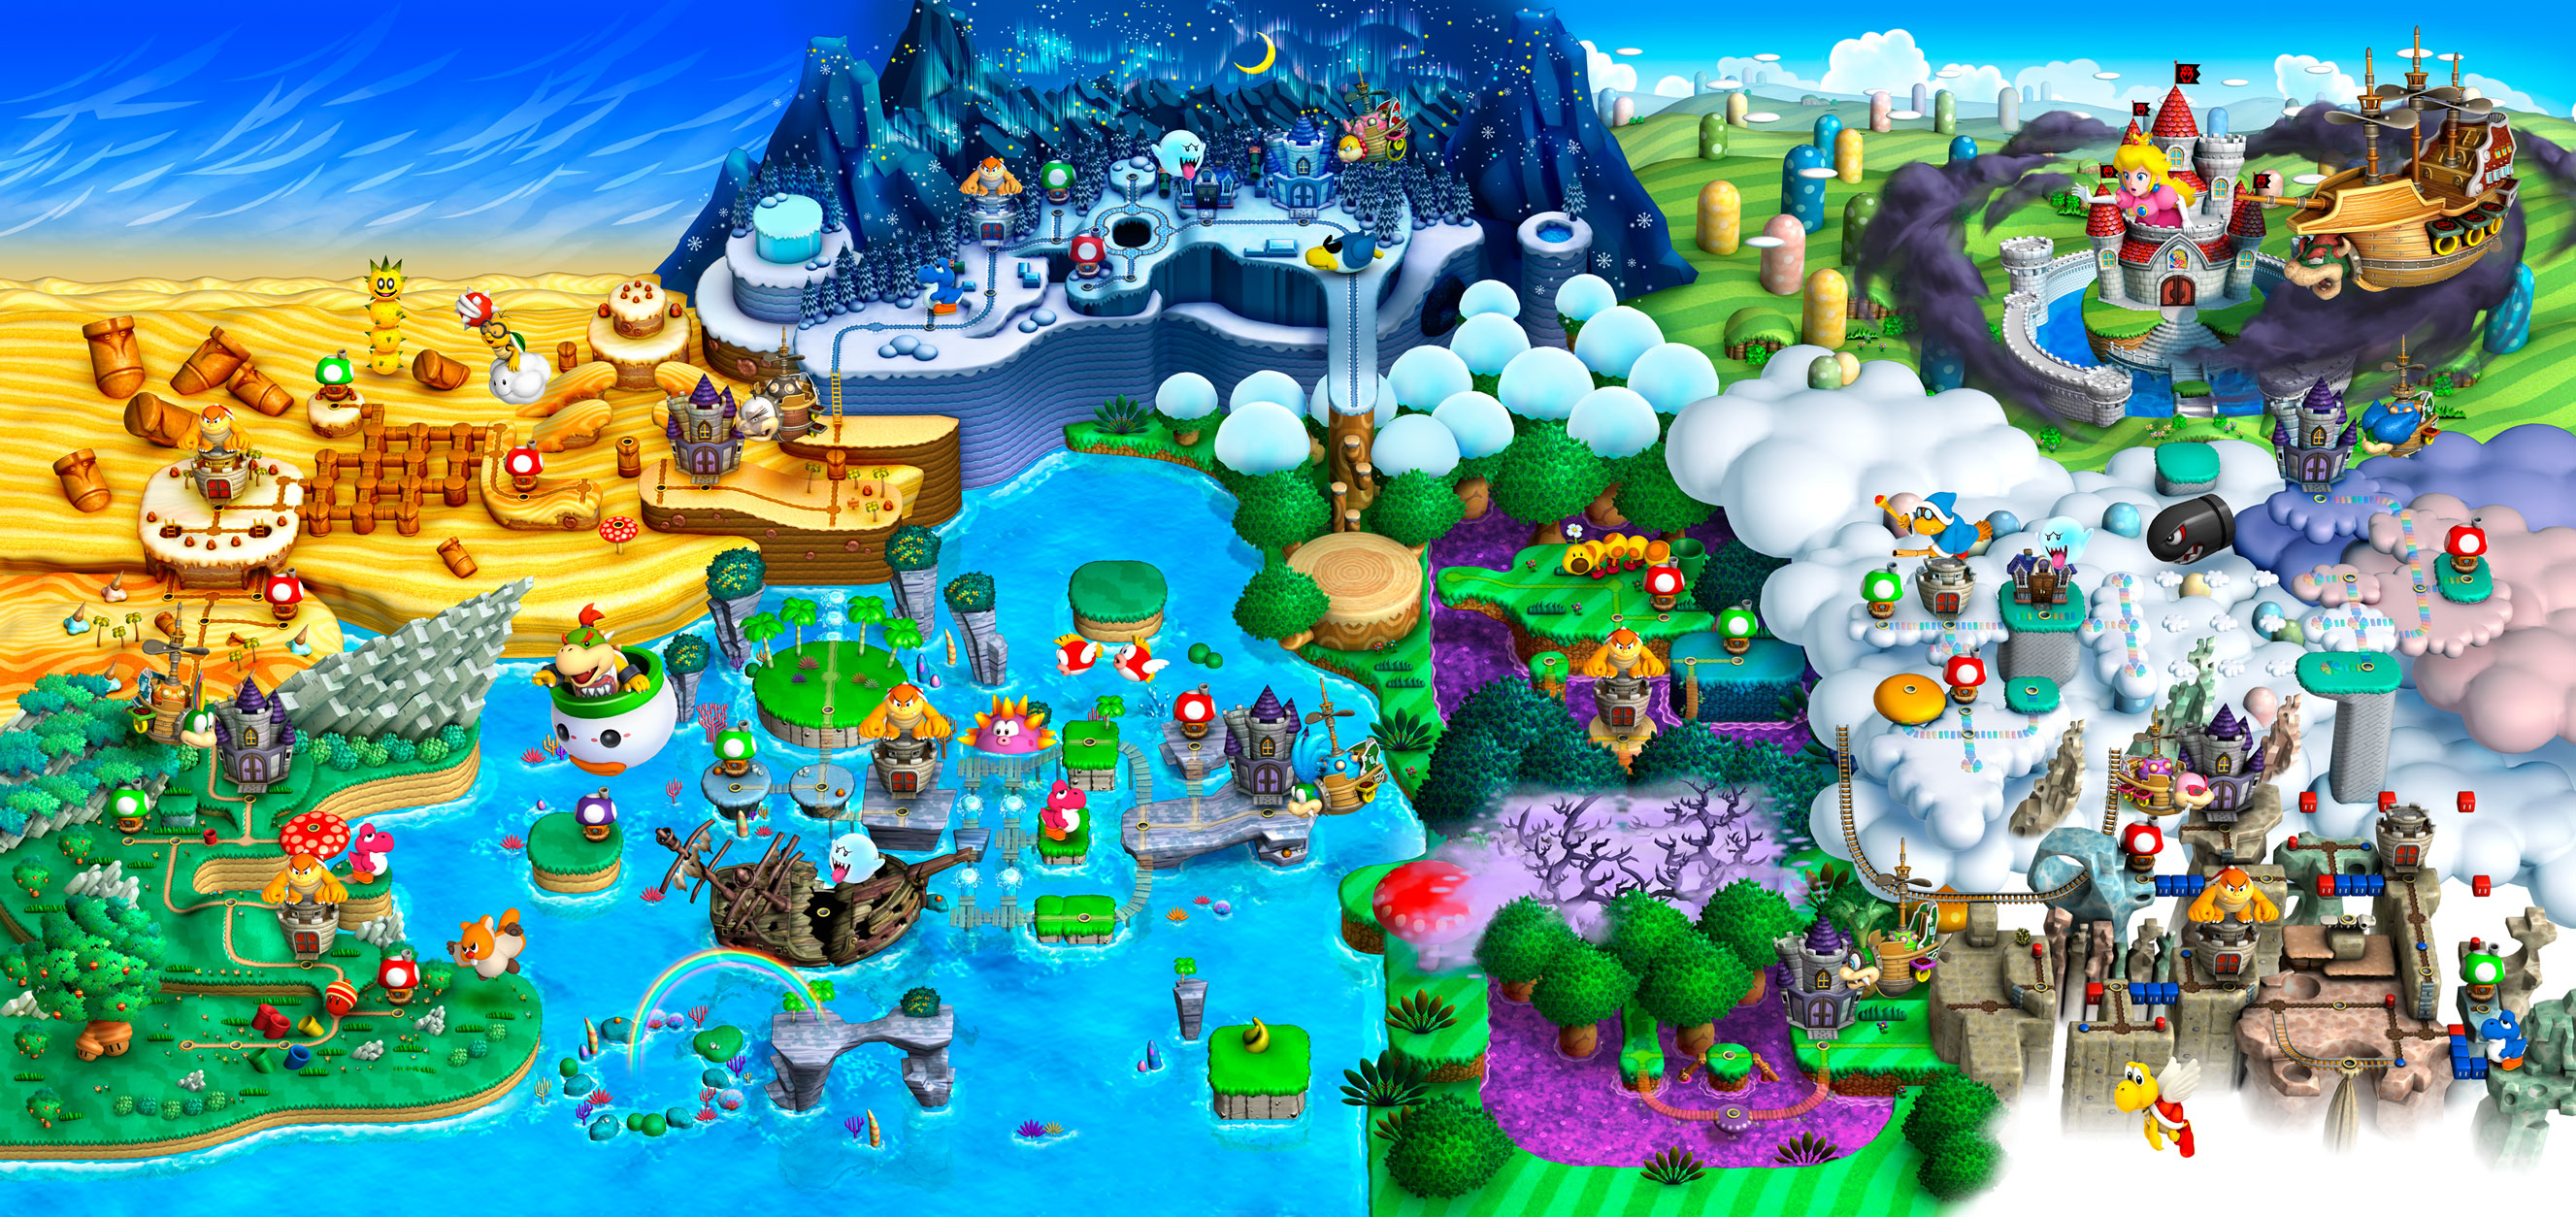 The Entire World Map of New Super Mario Bros. U